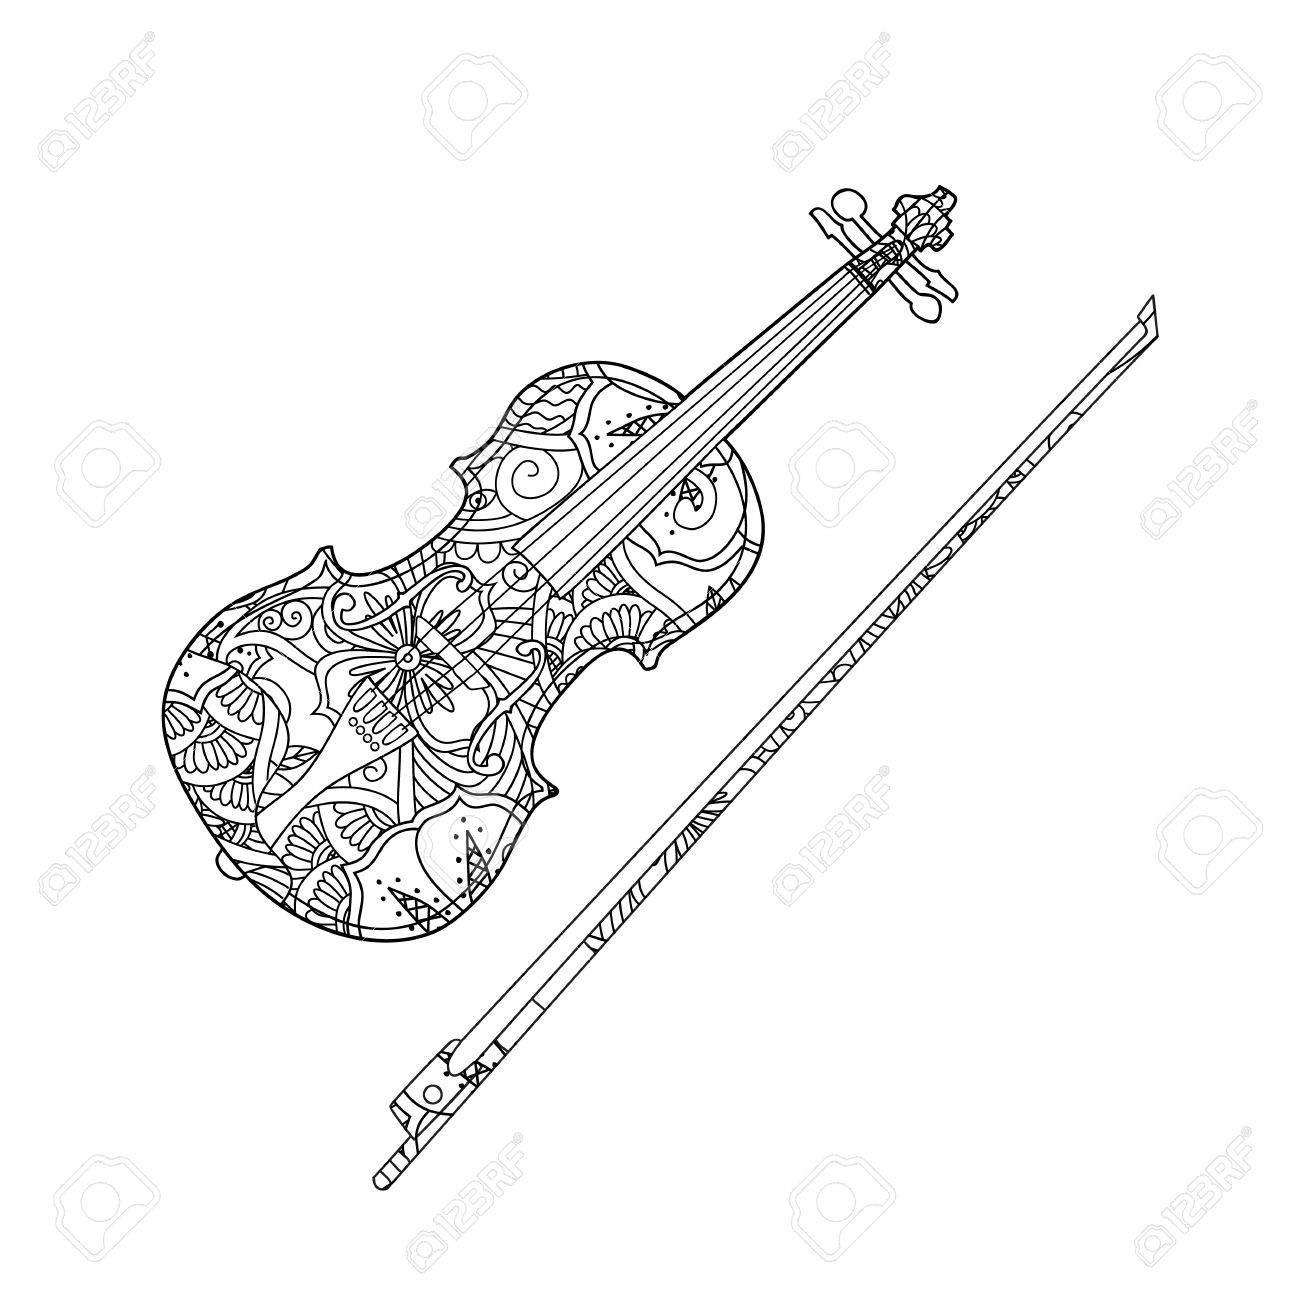 Coloring Page With Ornamental Violin And Fiddlestick Isolated On White Background Book For Adult